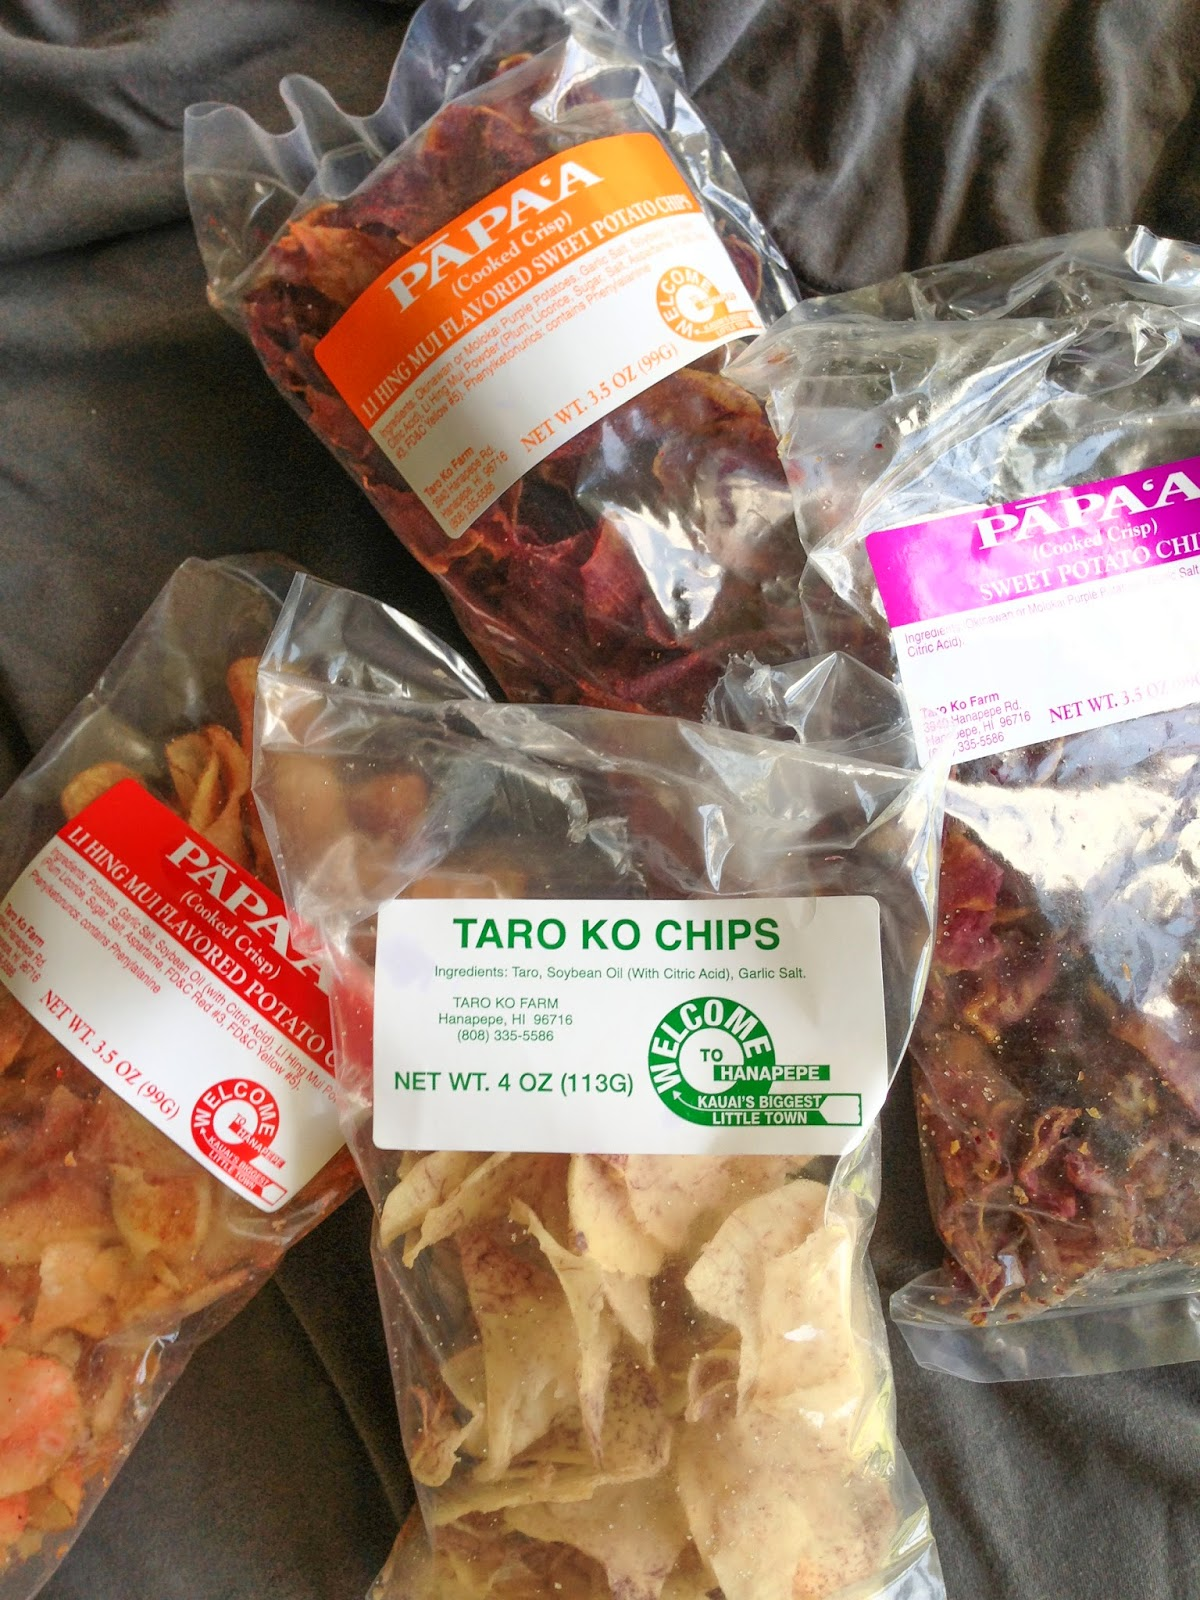 Taro Chips, Sweet Potato Chips, Li Hing Mui flavored potato chips, and Li Hing Mui flavored sweet potato chips